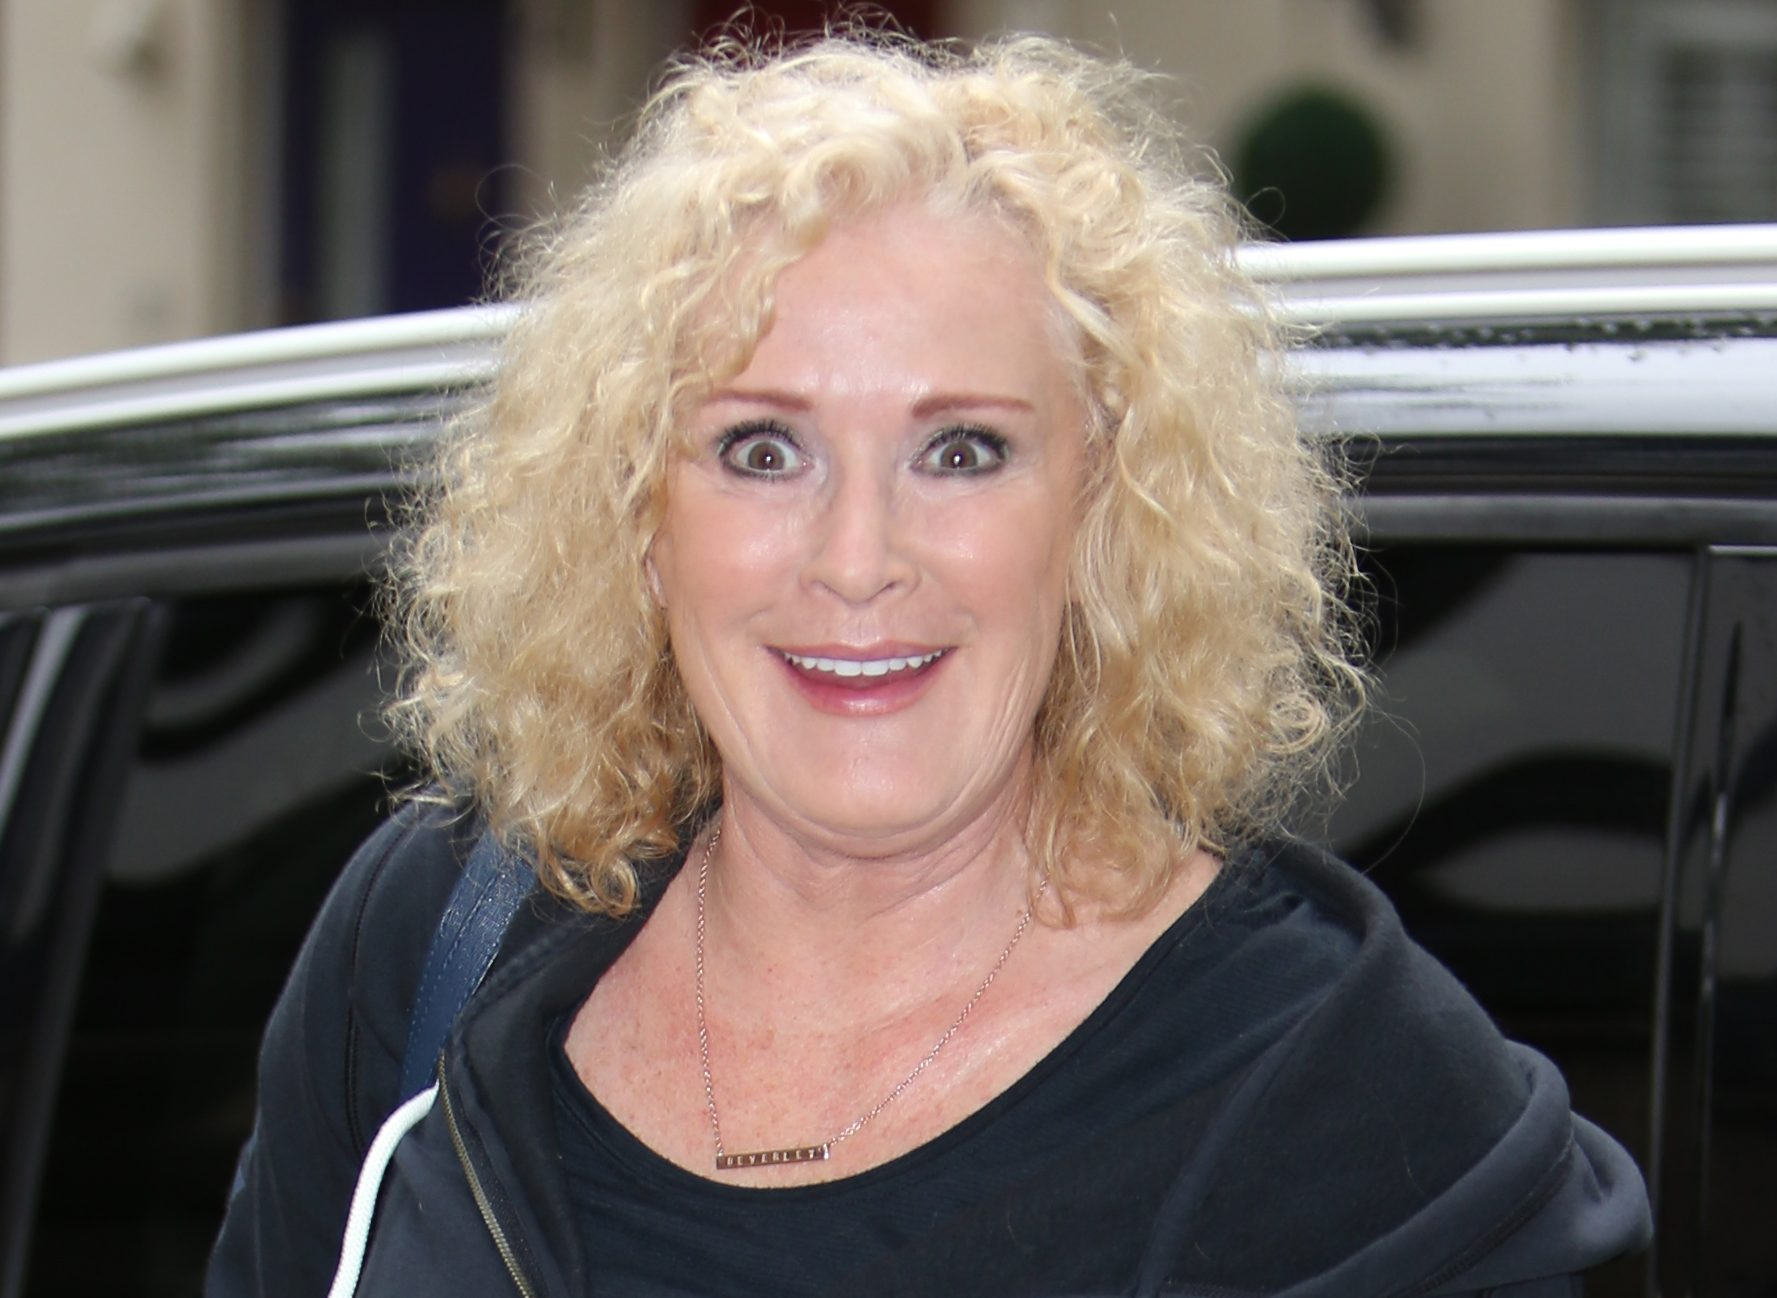 Corrie's Beverley Callard shares adorable pic of cuddles with her newborn grandson